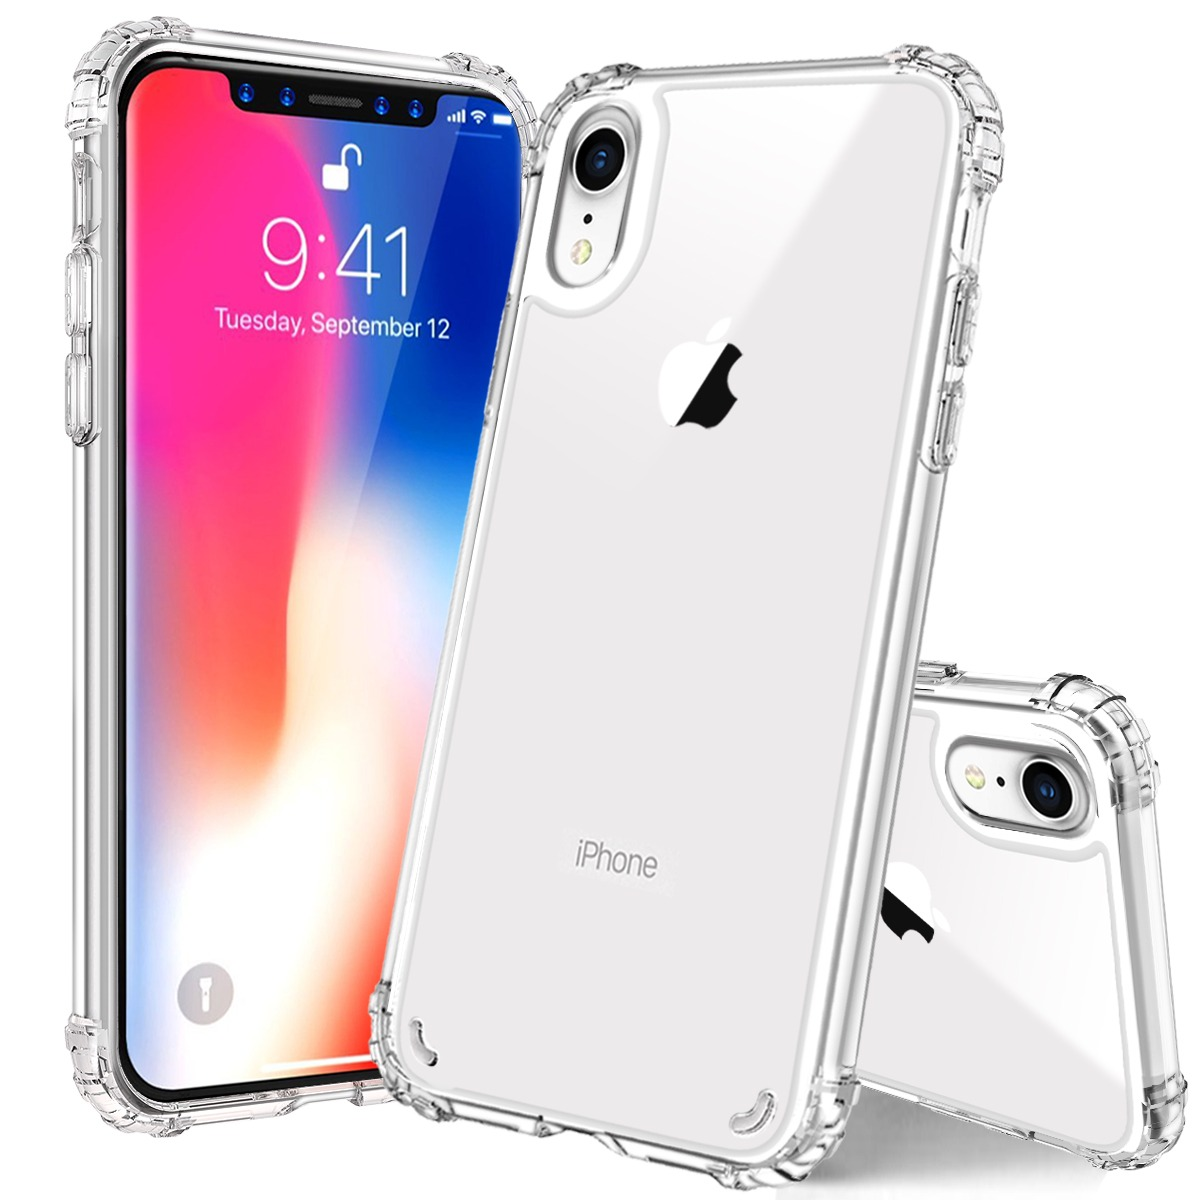 superior quality 02374 38585 US $3.99 20% OFF|For iPhone XR XS Max X Case, Crystal Clear Slim Protective  Cover with Reinforced Corner Bumpers, Flexible Soft TPU Anti Scratch-in ...